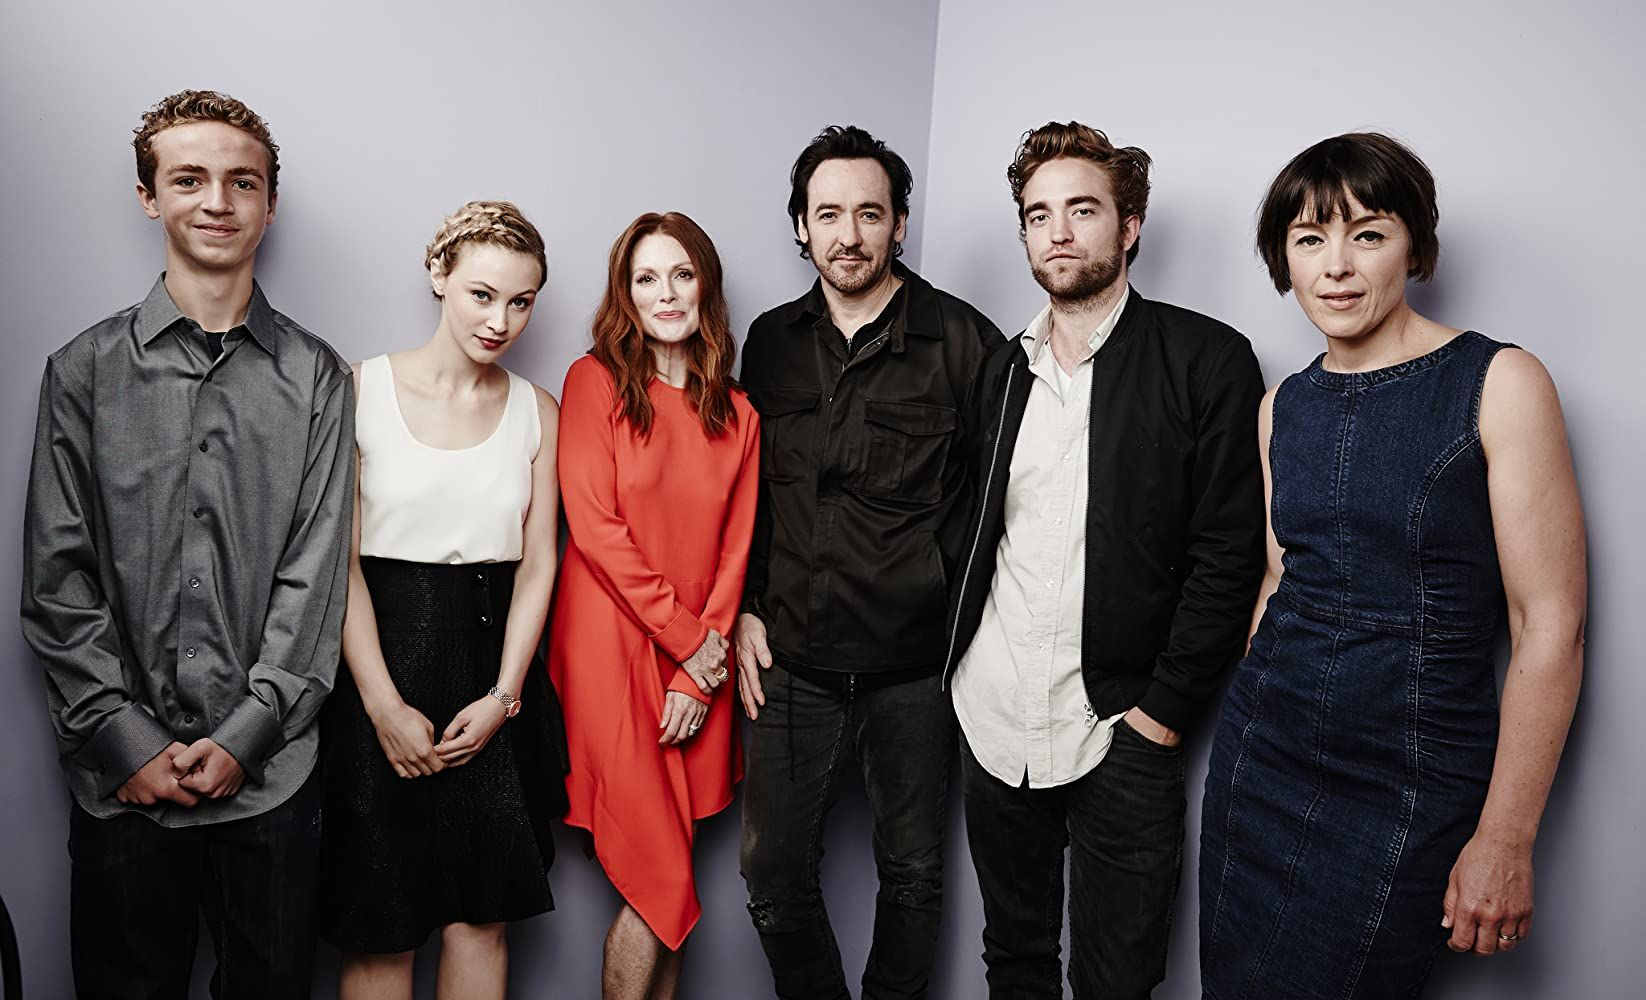 John Cusack in 2020 | Julianne moore, Robert pattinson ...